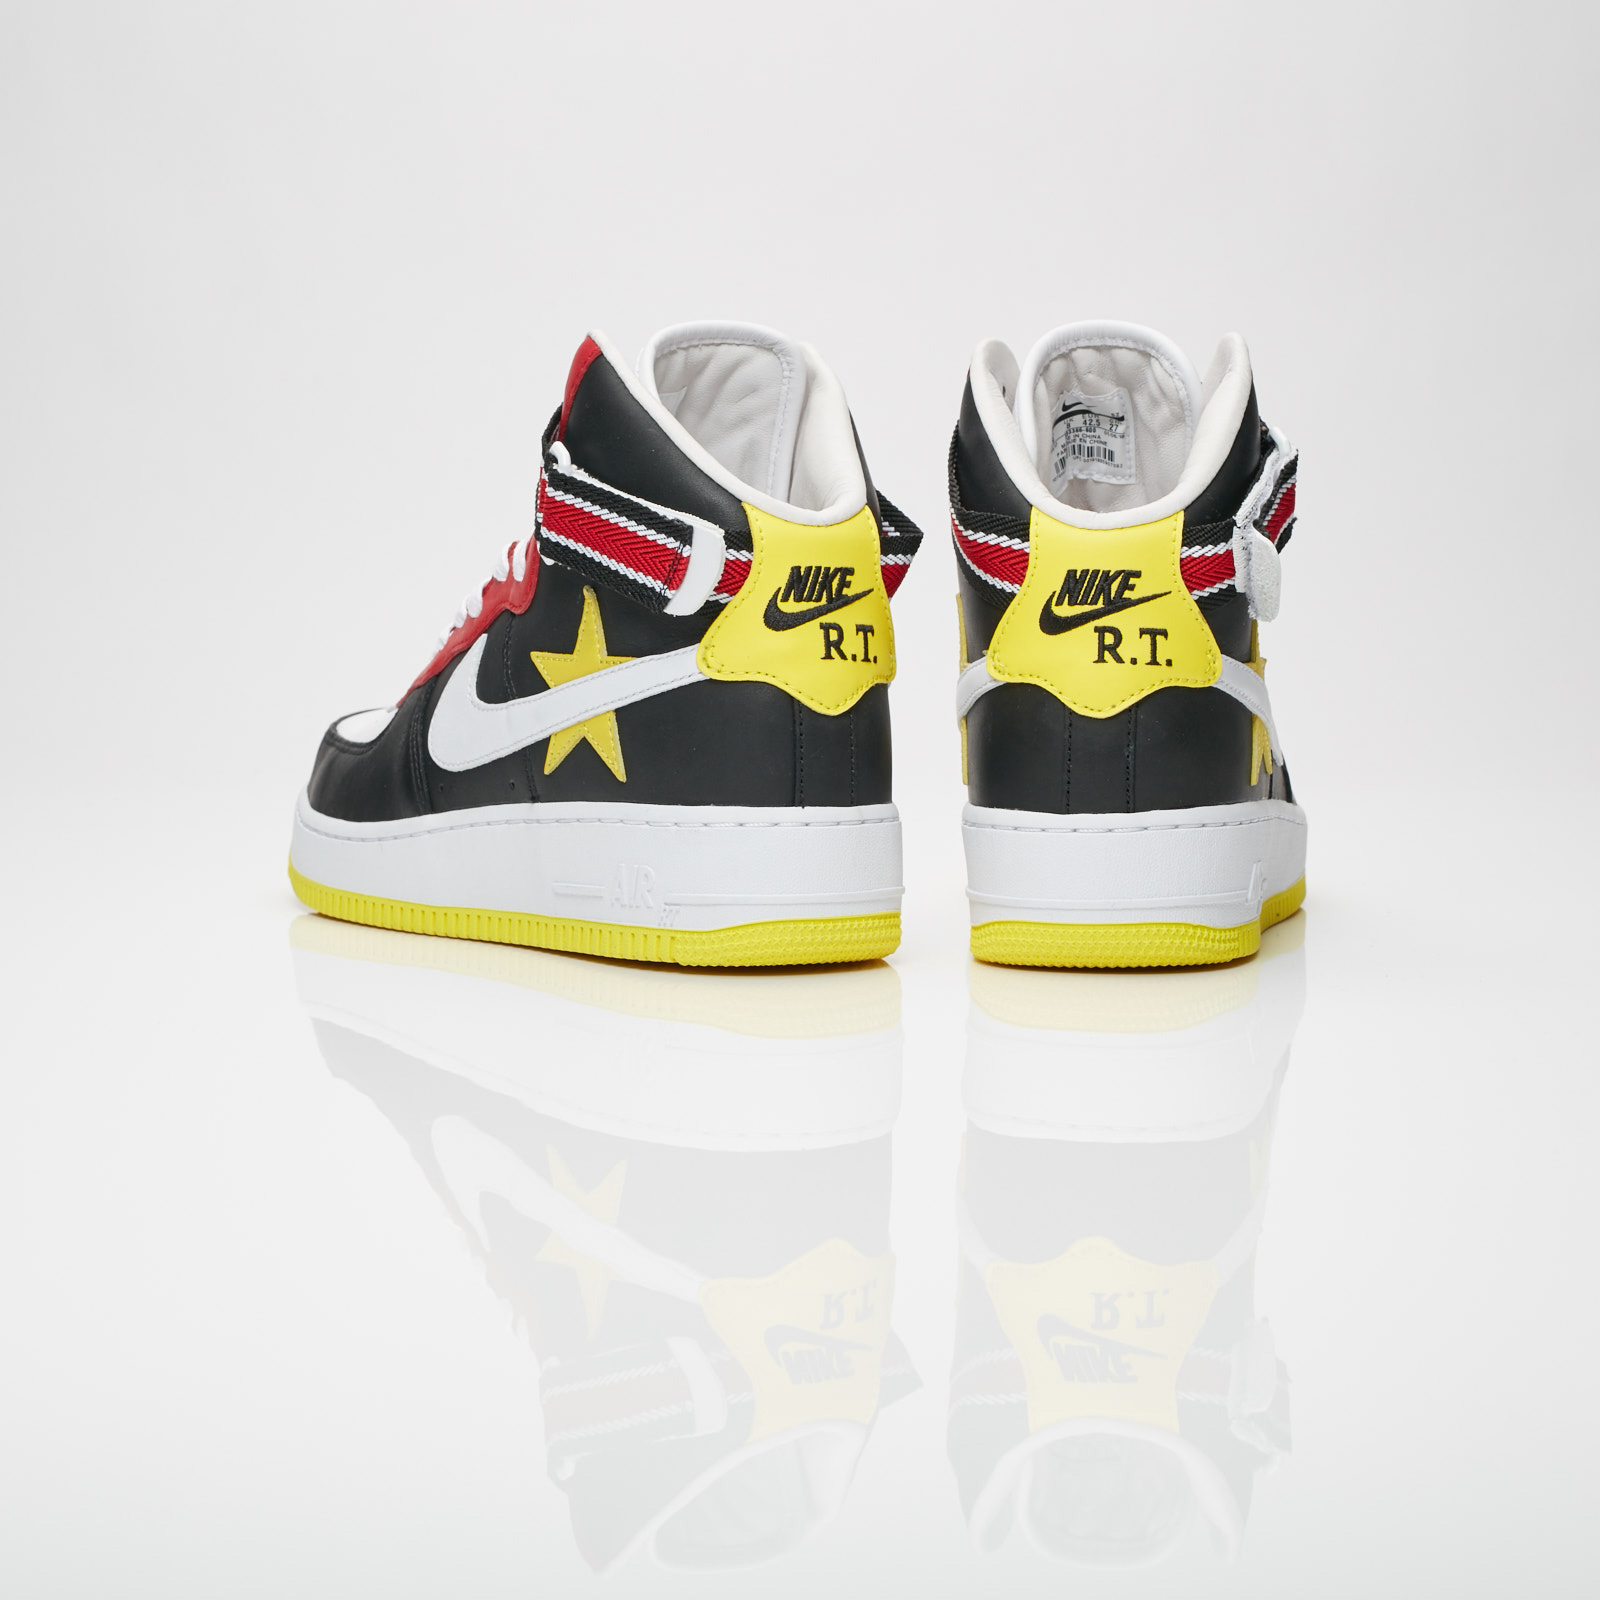 on sale db884 726c9 Nike Air Force 1 Hi x Riccardo Tisci - Aq3366-600 - Sneakersnstuff    sneakers   streetwear online since 1999